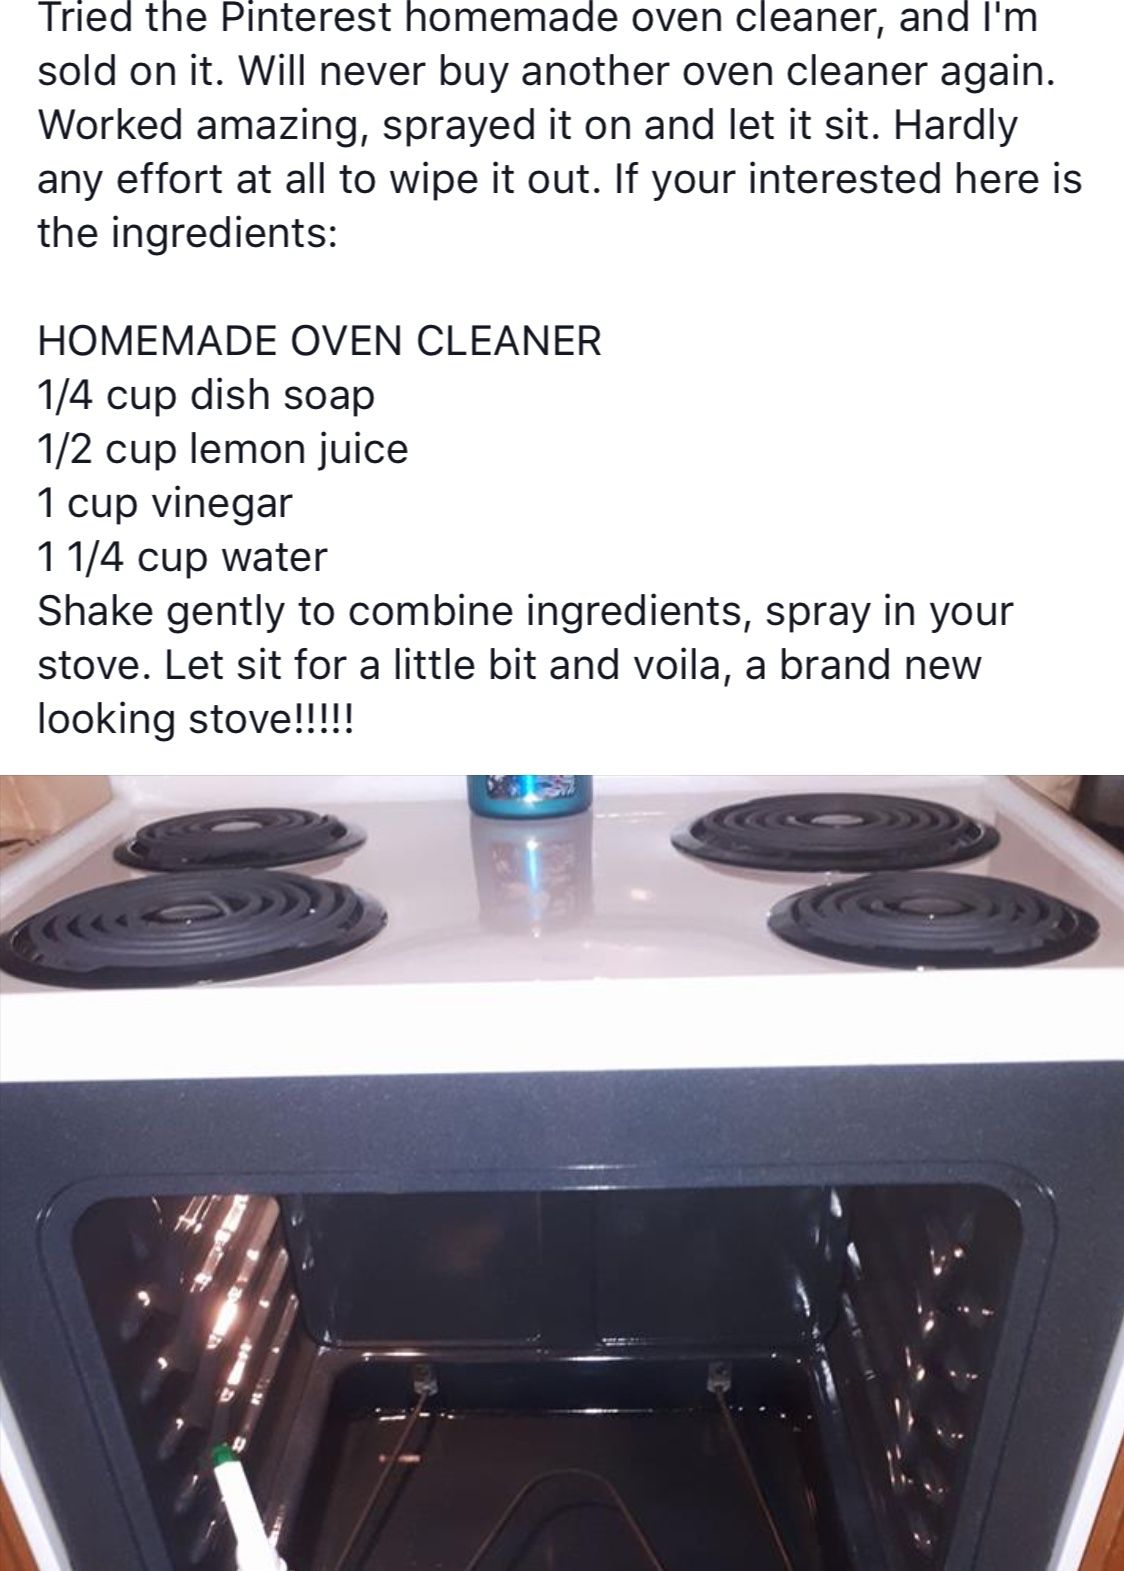 Homemade oven cleaner (With images) Homemade oven